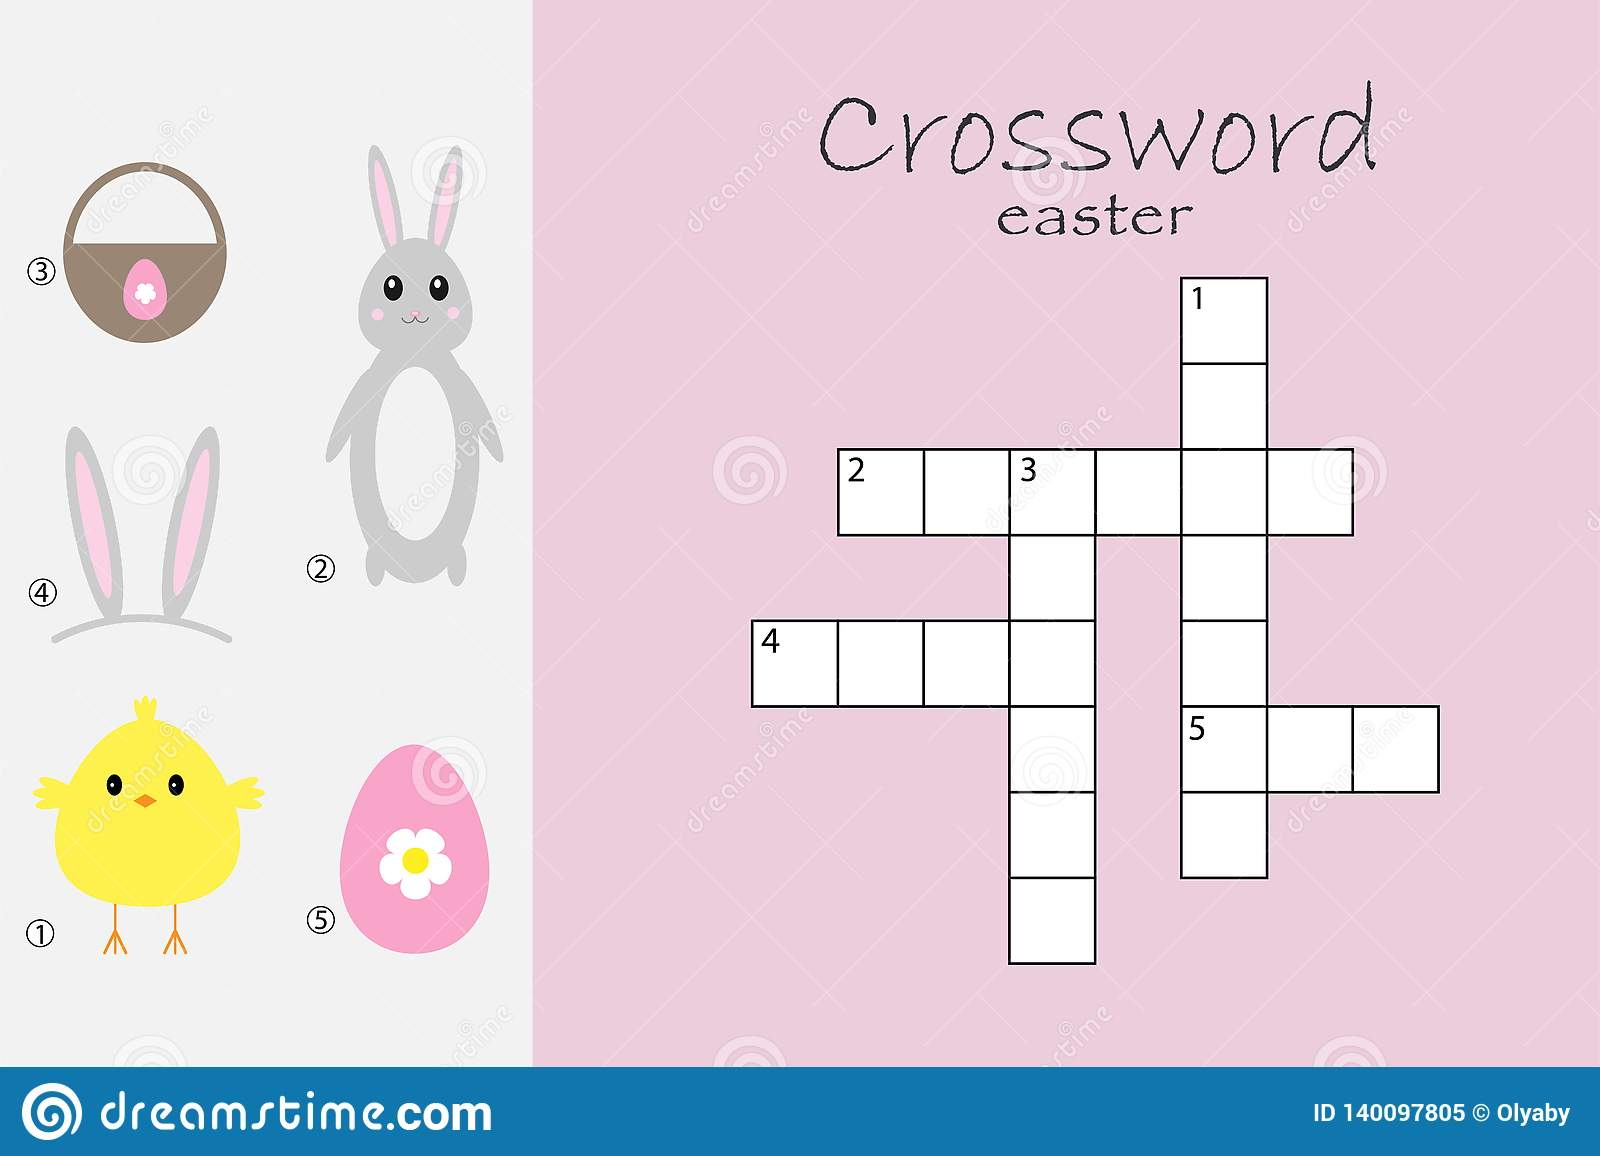 Rossword For Children Easter Theme Fun Education Game